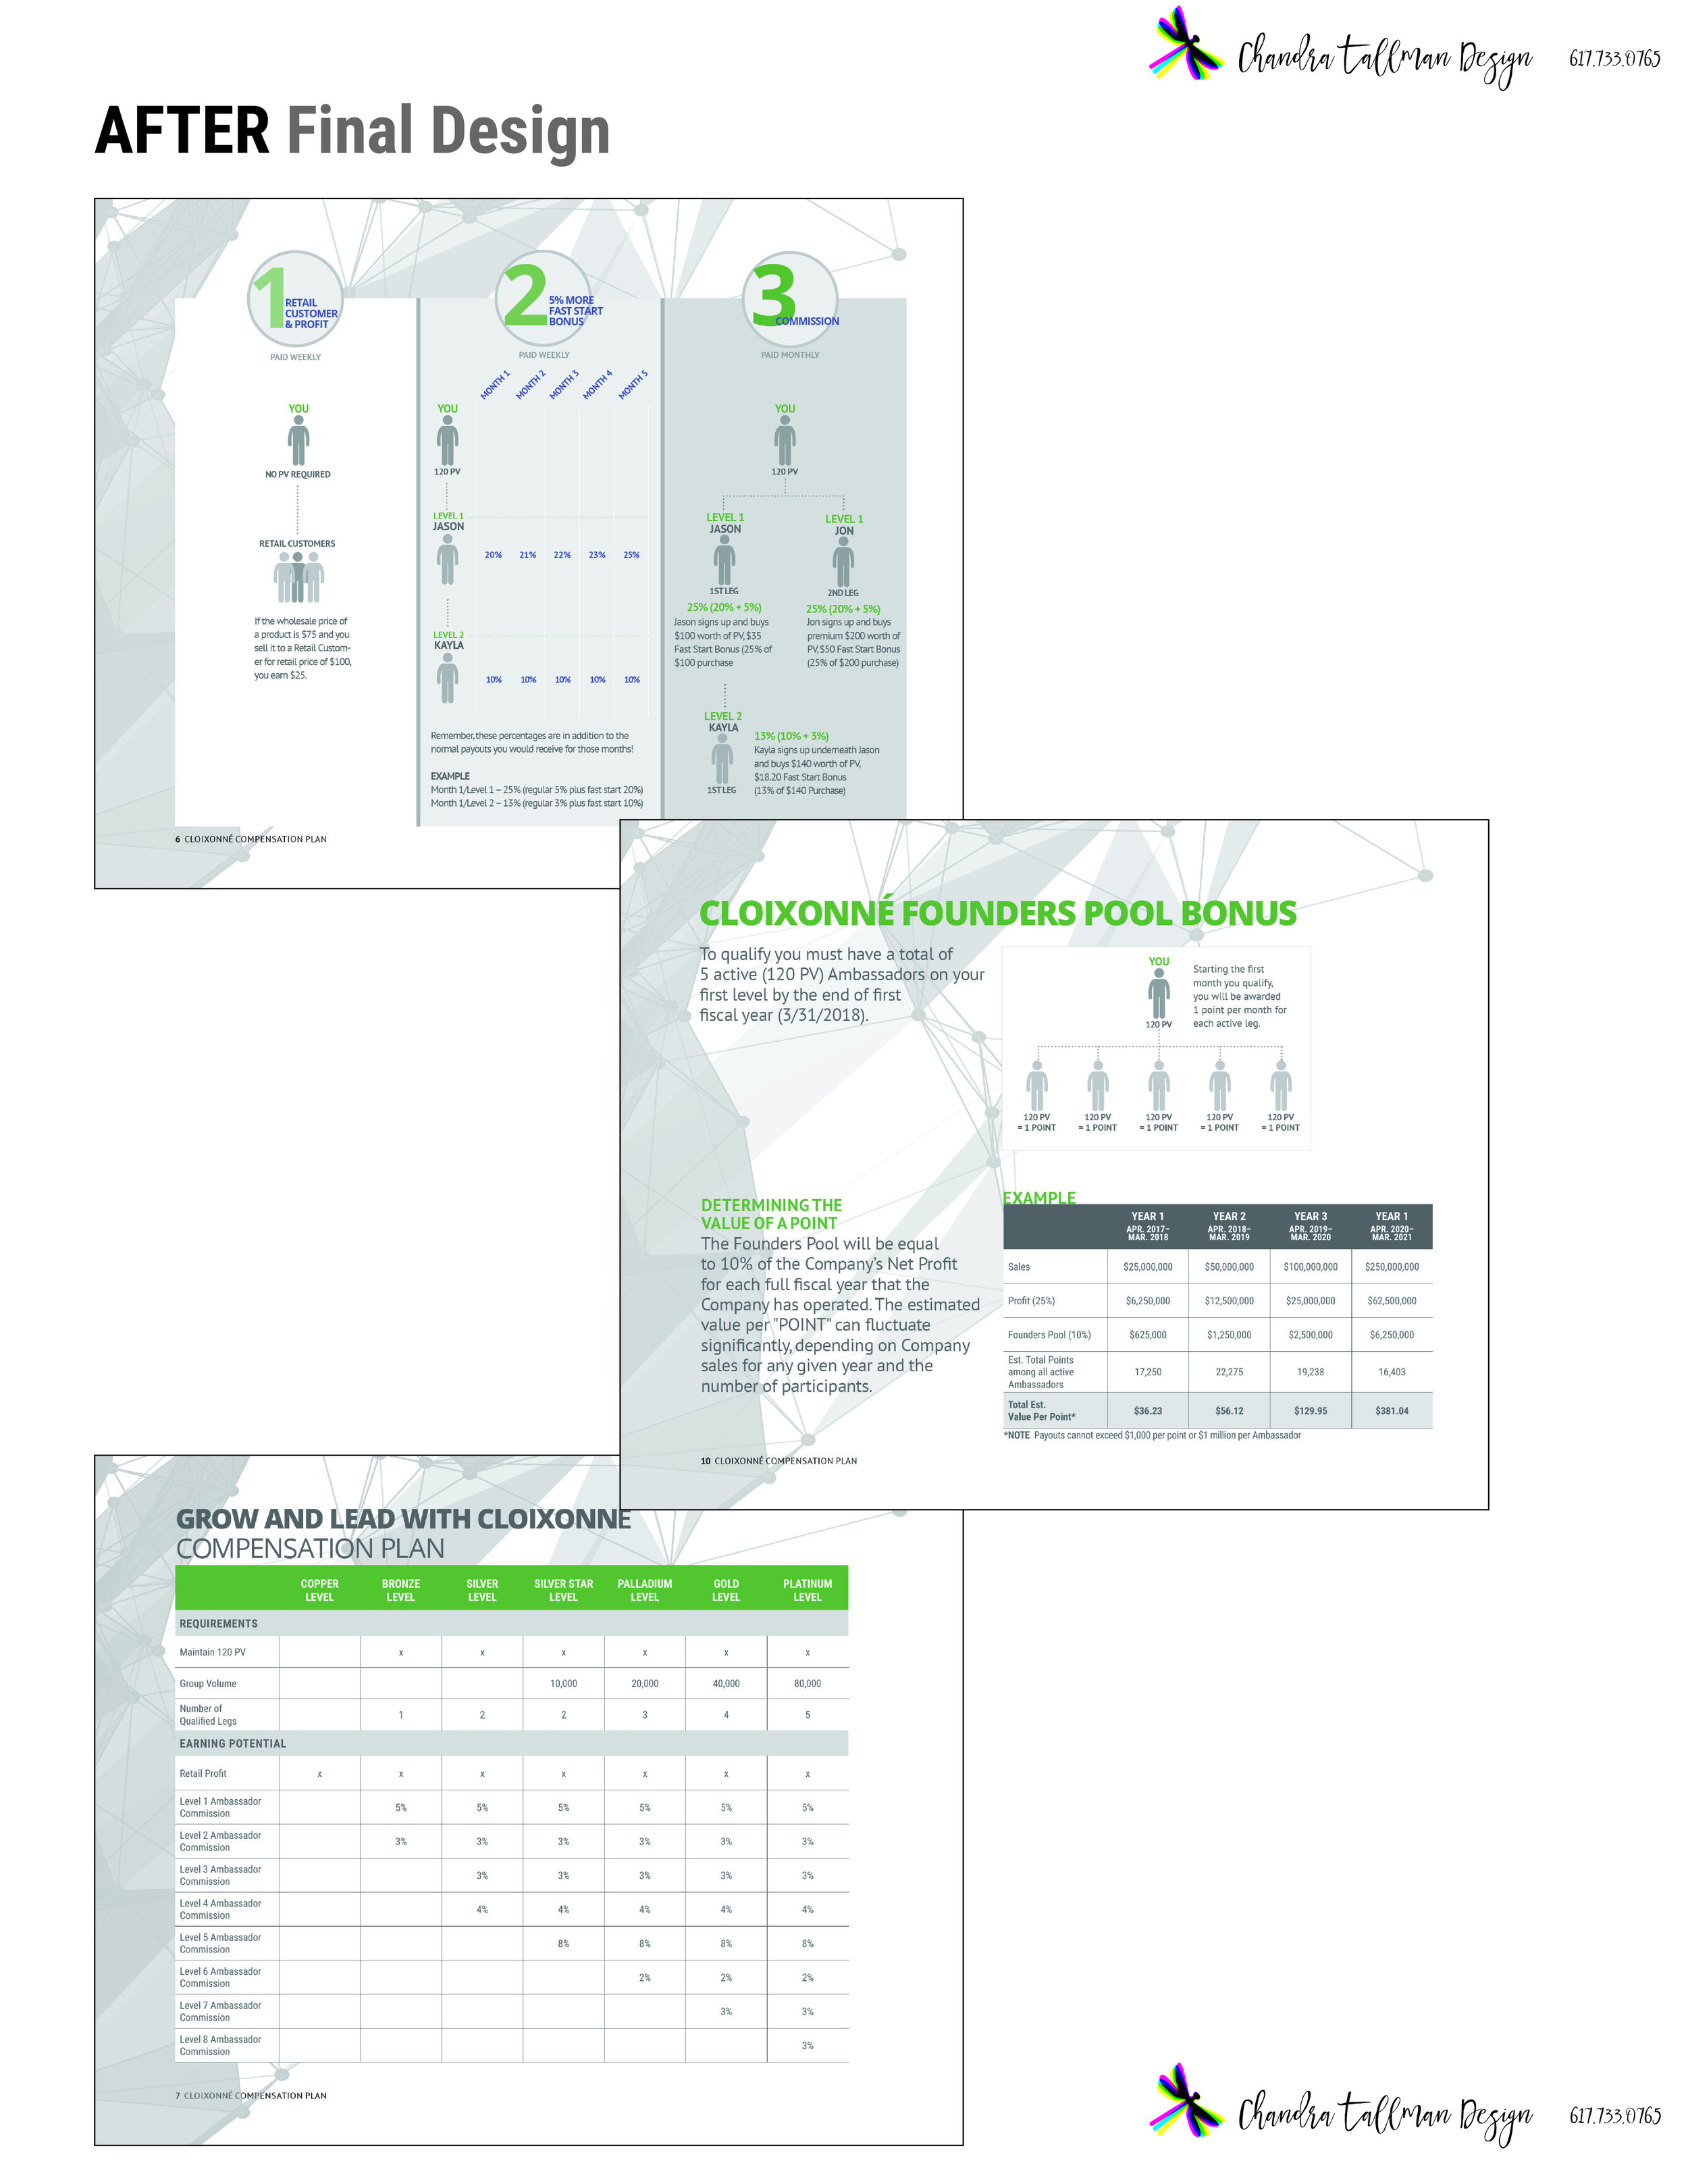 A few of the infographics pages in the final compensation plan design